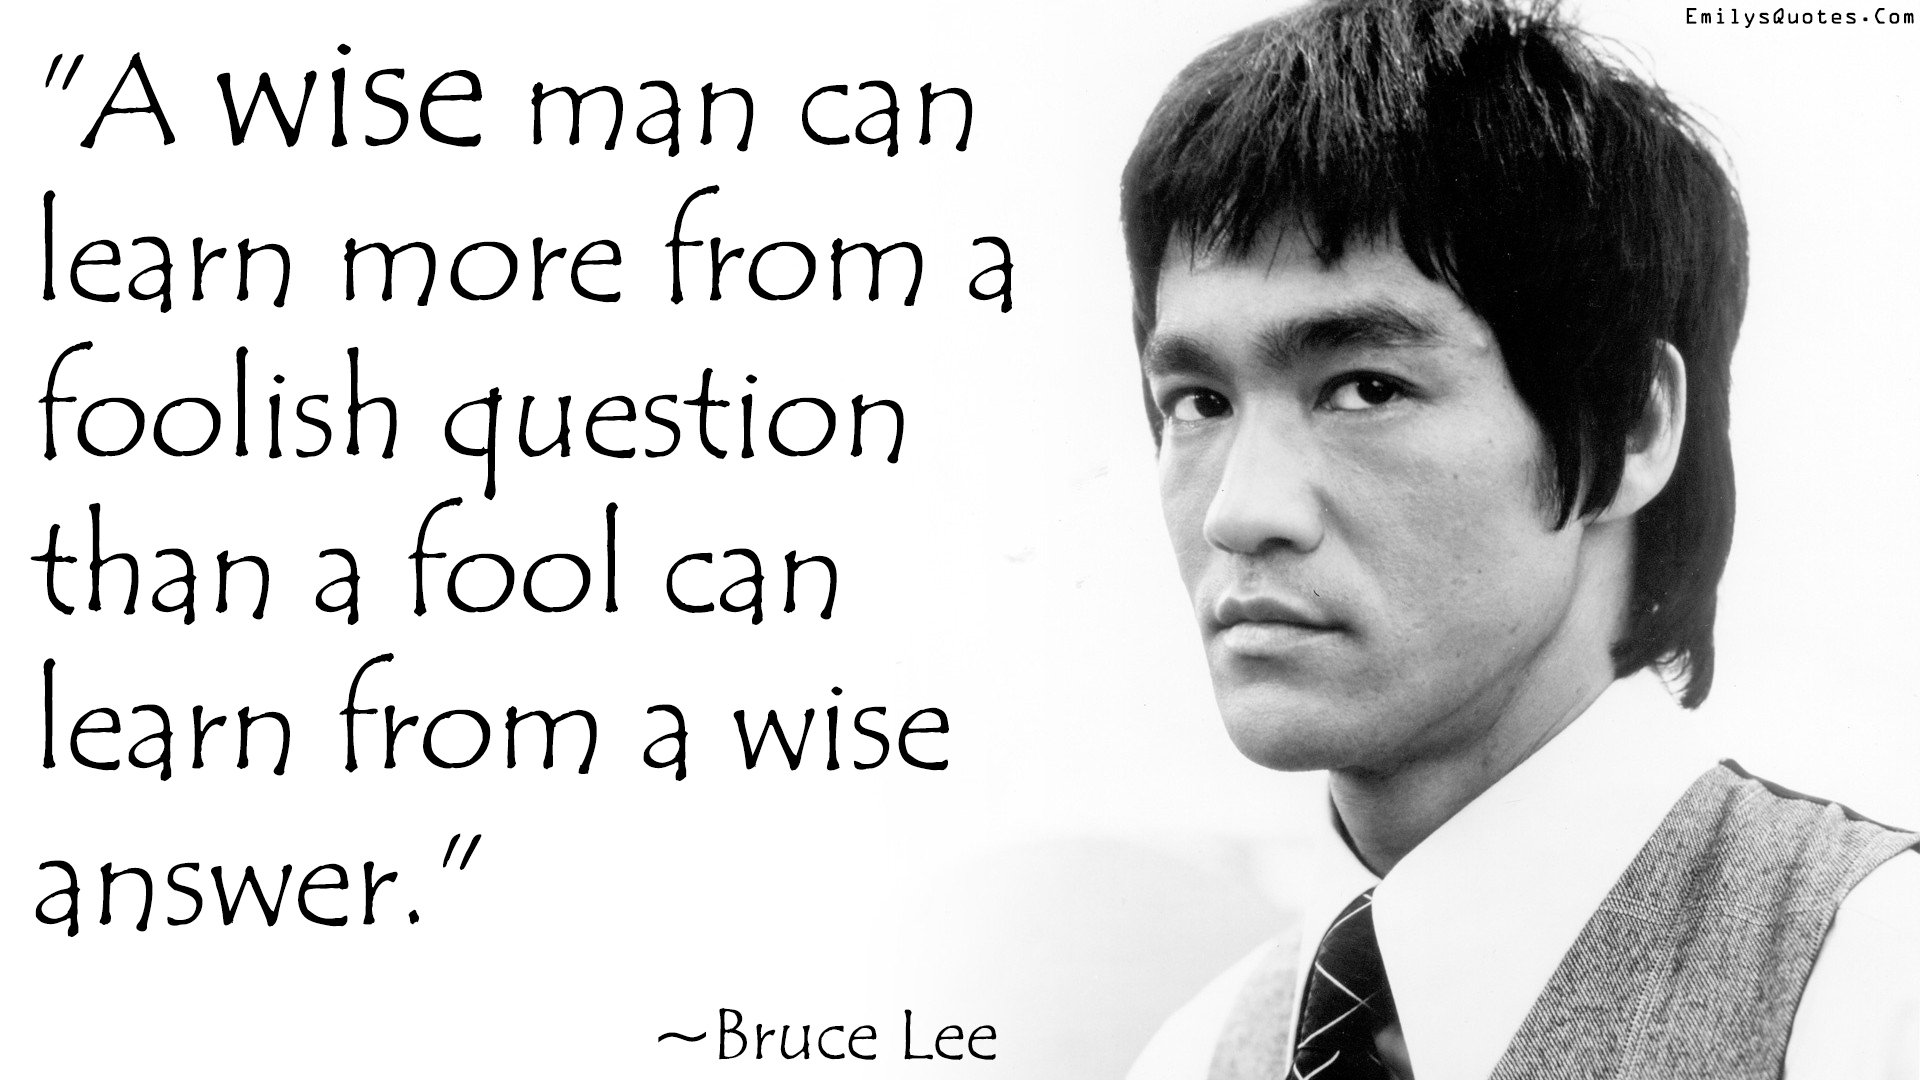 Image result for A wise man can learn more from a foolish question than a fool can learn from a wise answer.